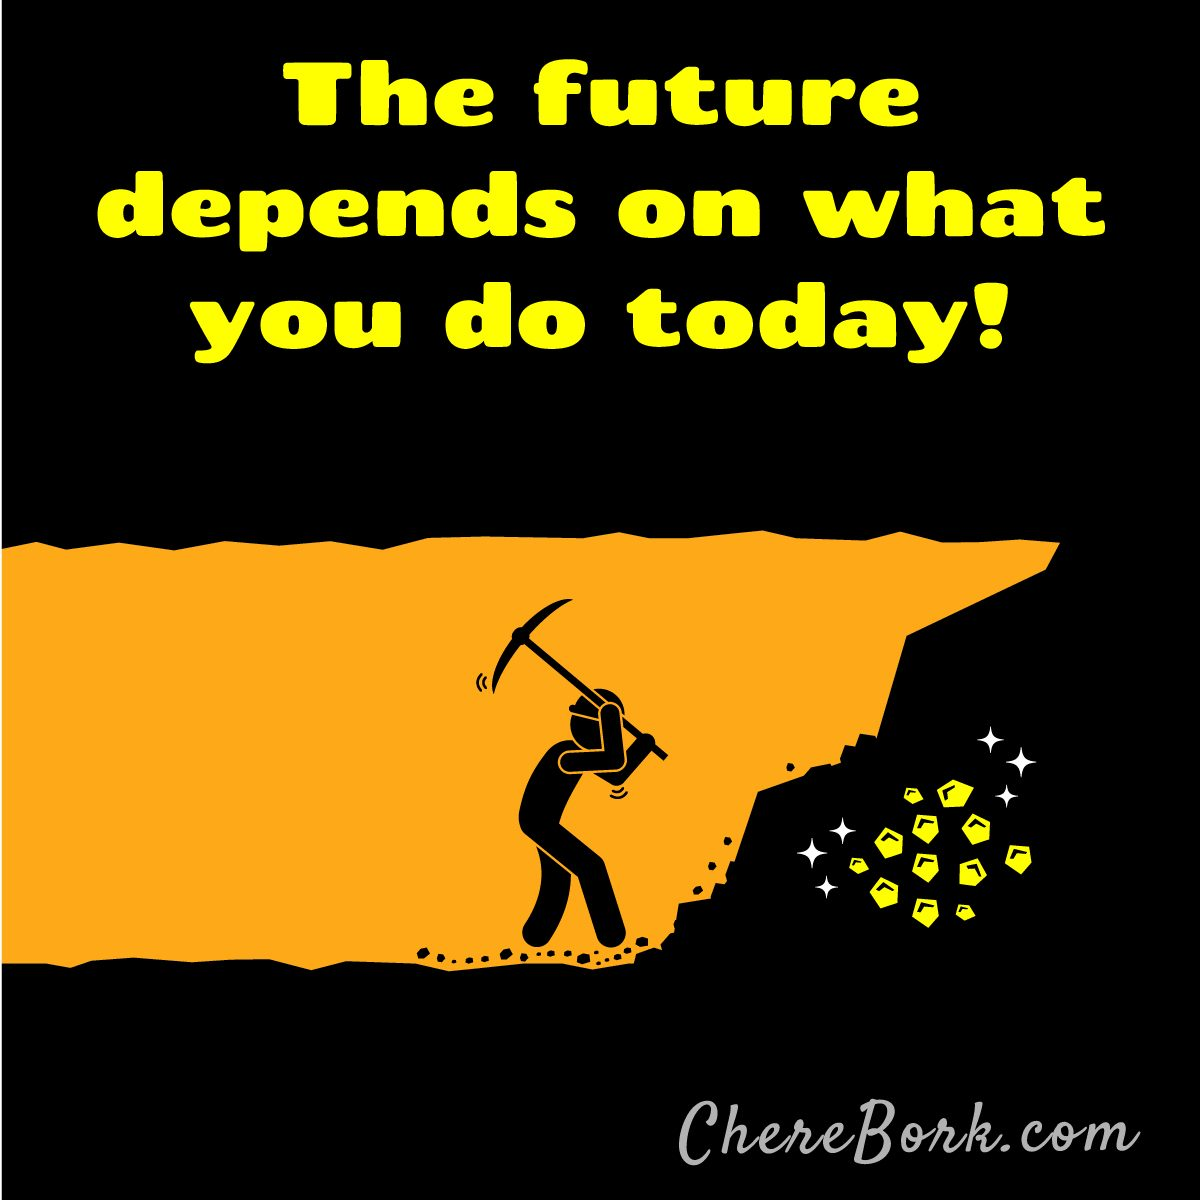 The future depends on what you do today. -Chere Bork